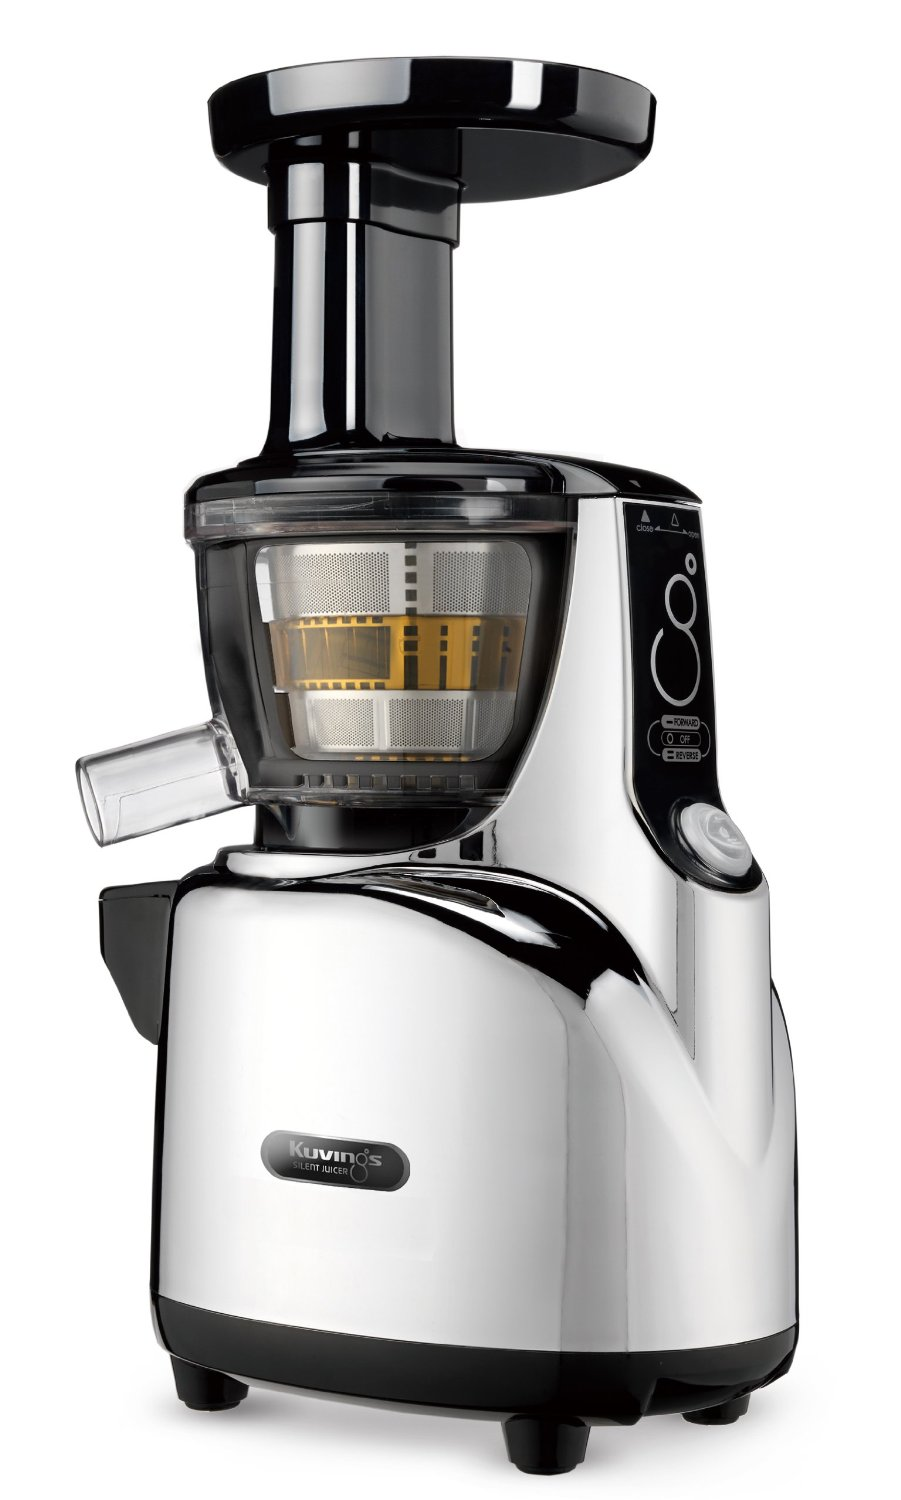 Kuvings Whole Slow Juicer B6000s Reviews : 5 Best Kuvings Juicer Reviews UPDATED: 2018 The Home Savant